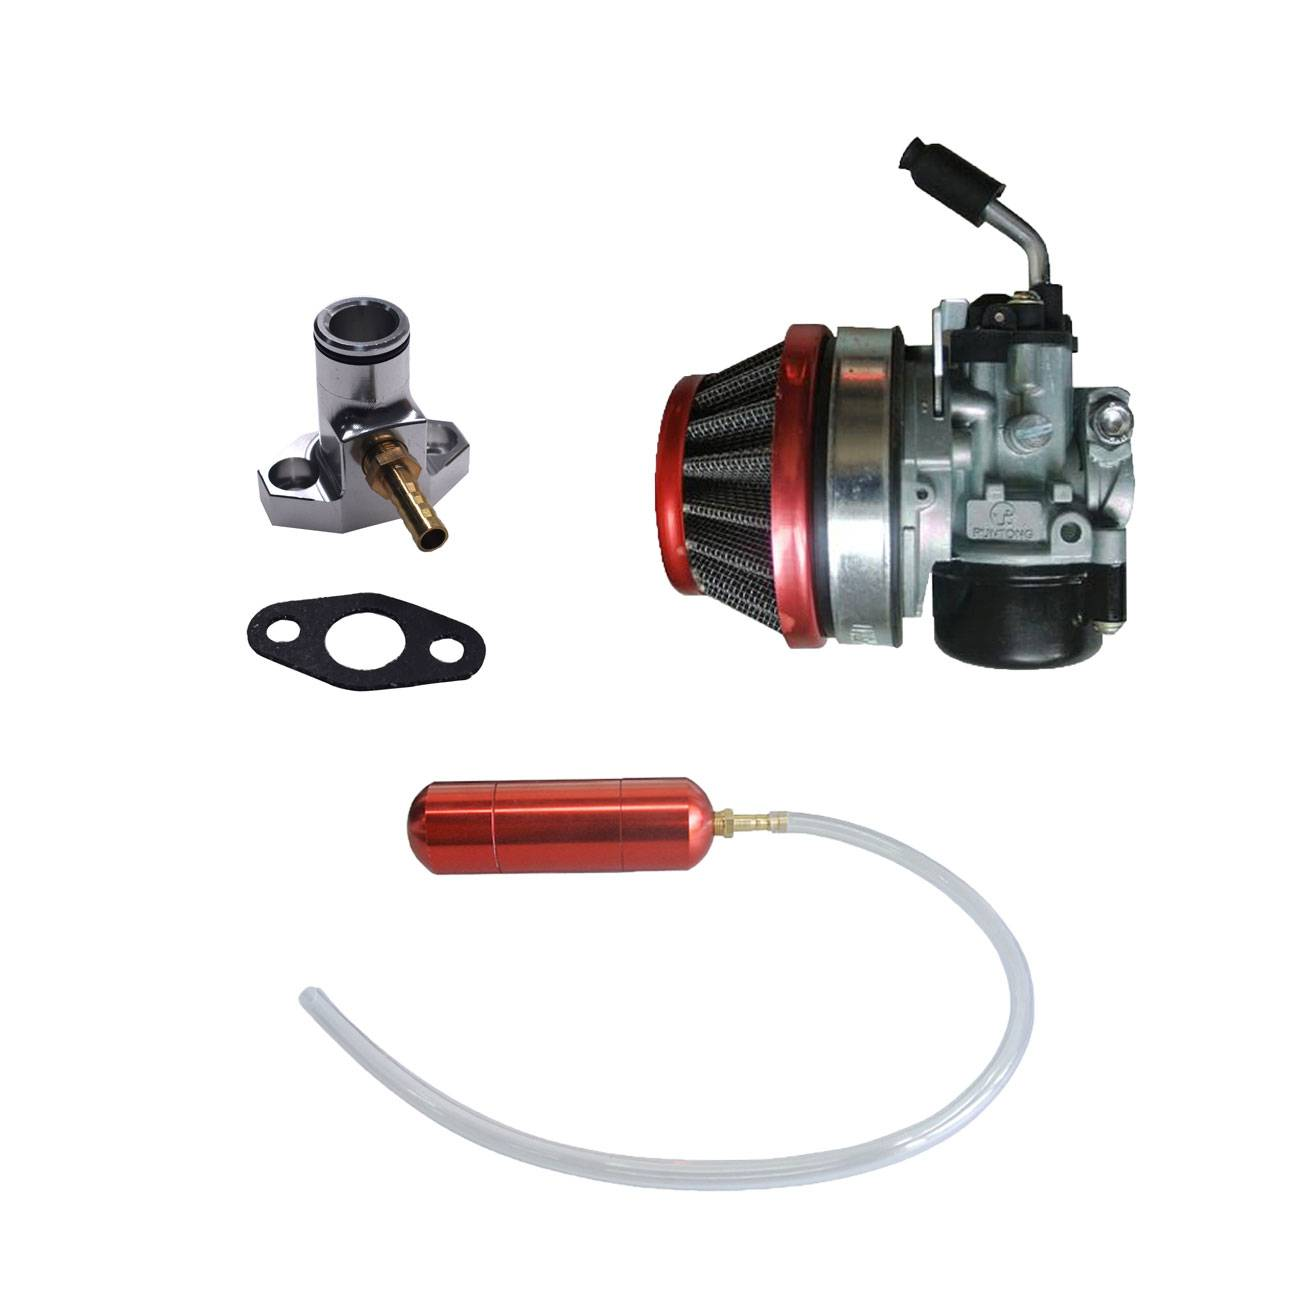 Red Gas Power Boost Bottle&Carburetor Fits 66cc 80cc Motorized Bicycle Engine